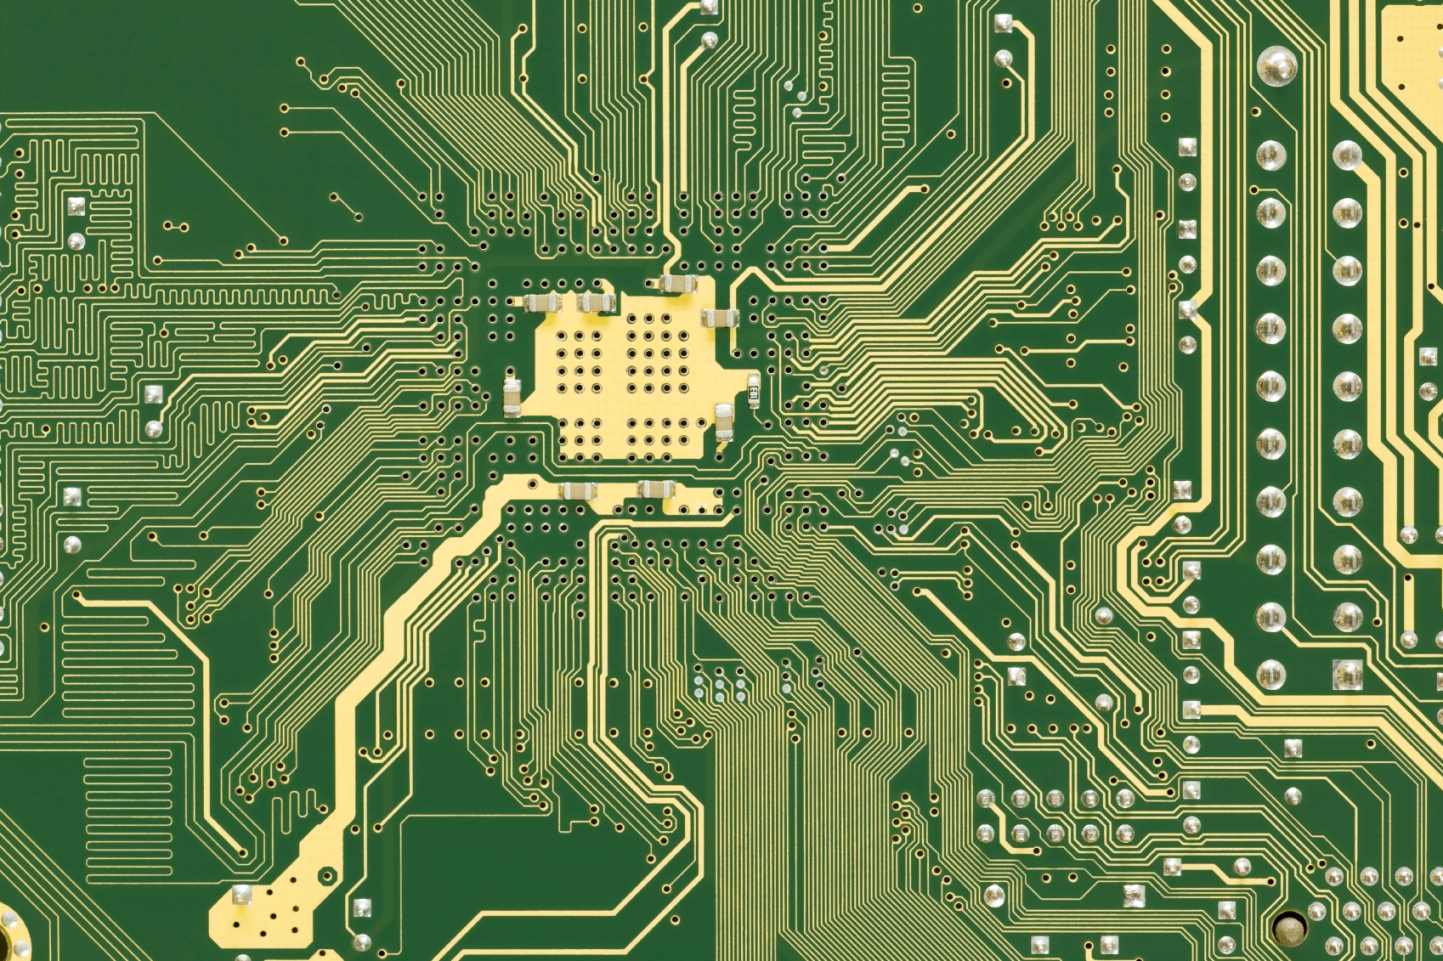 Wallpaper Printed Circuit Card Pcb Copy Accurary Reverse Engineering Clone Services 1443x961